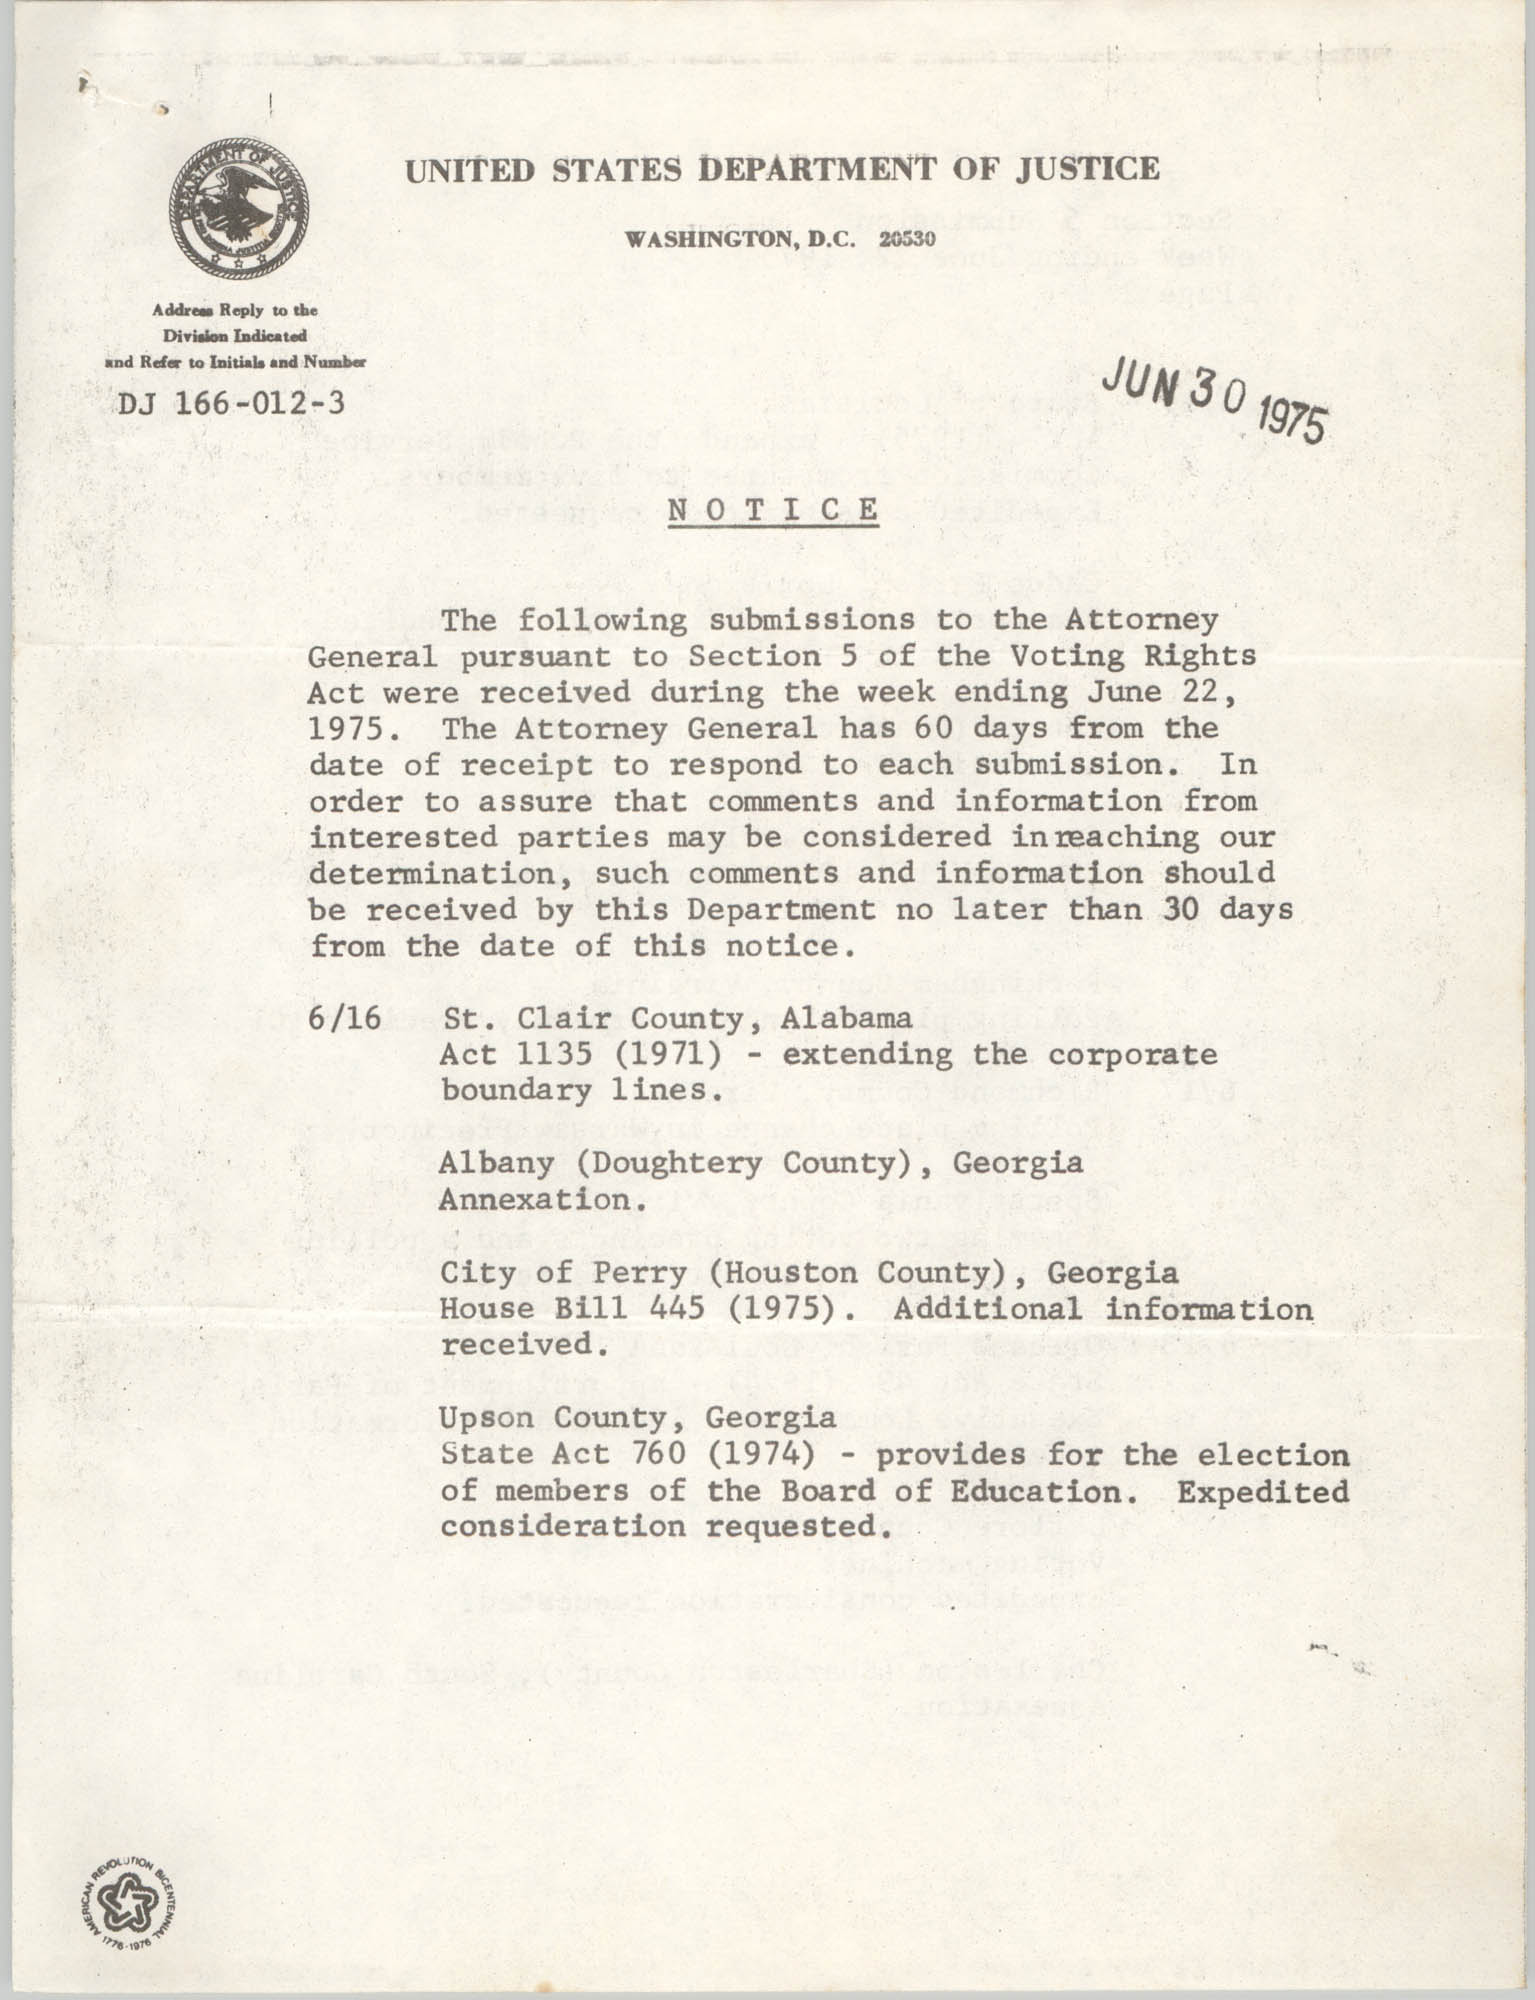 United States Department of Justice Notice, June 30, 1975